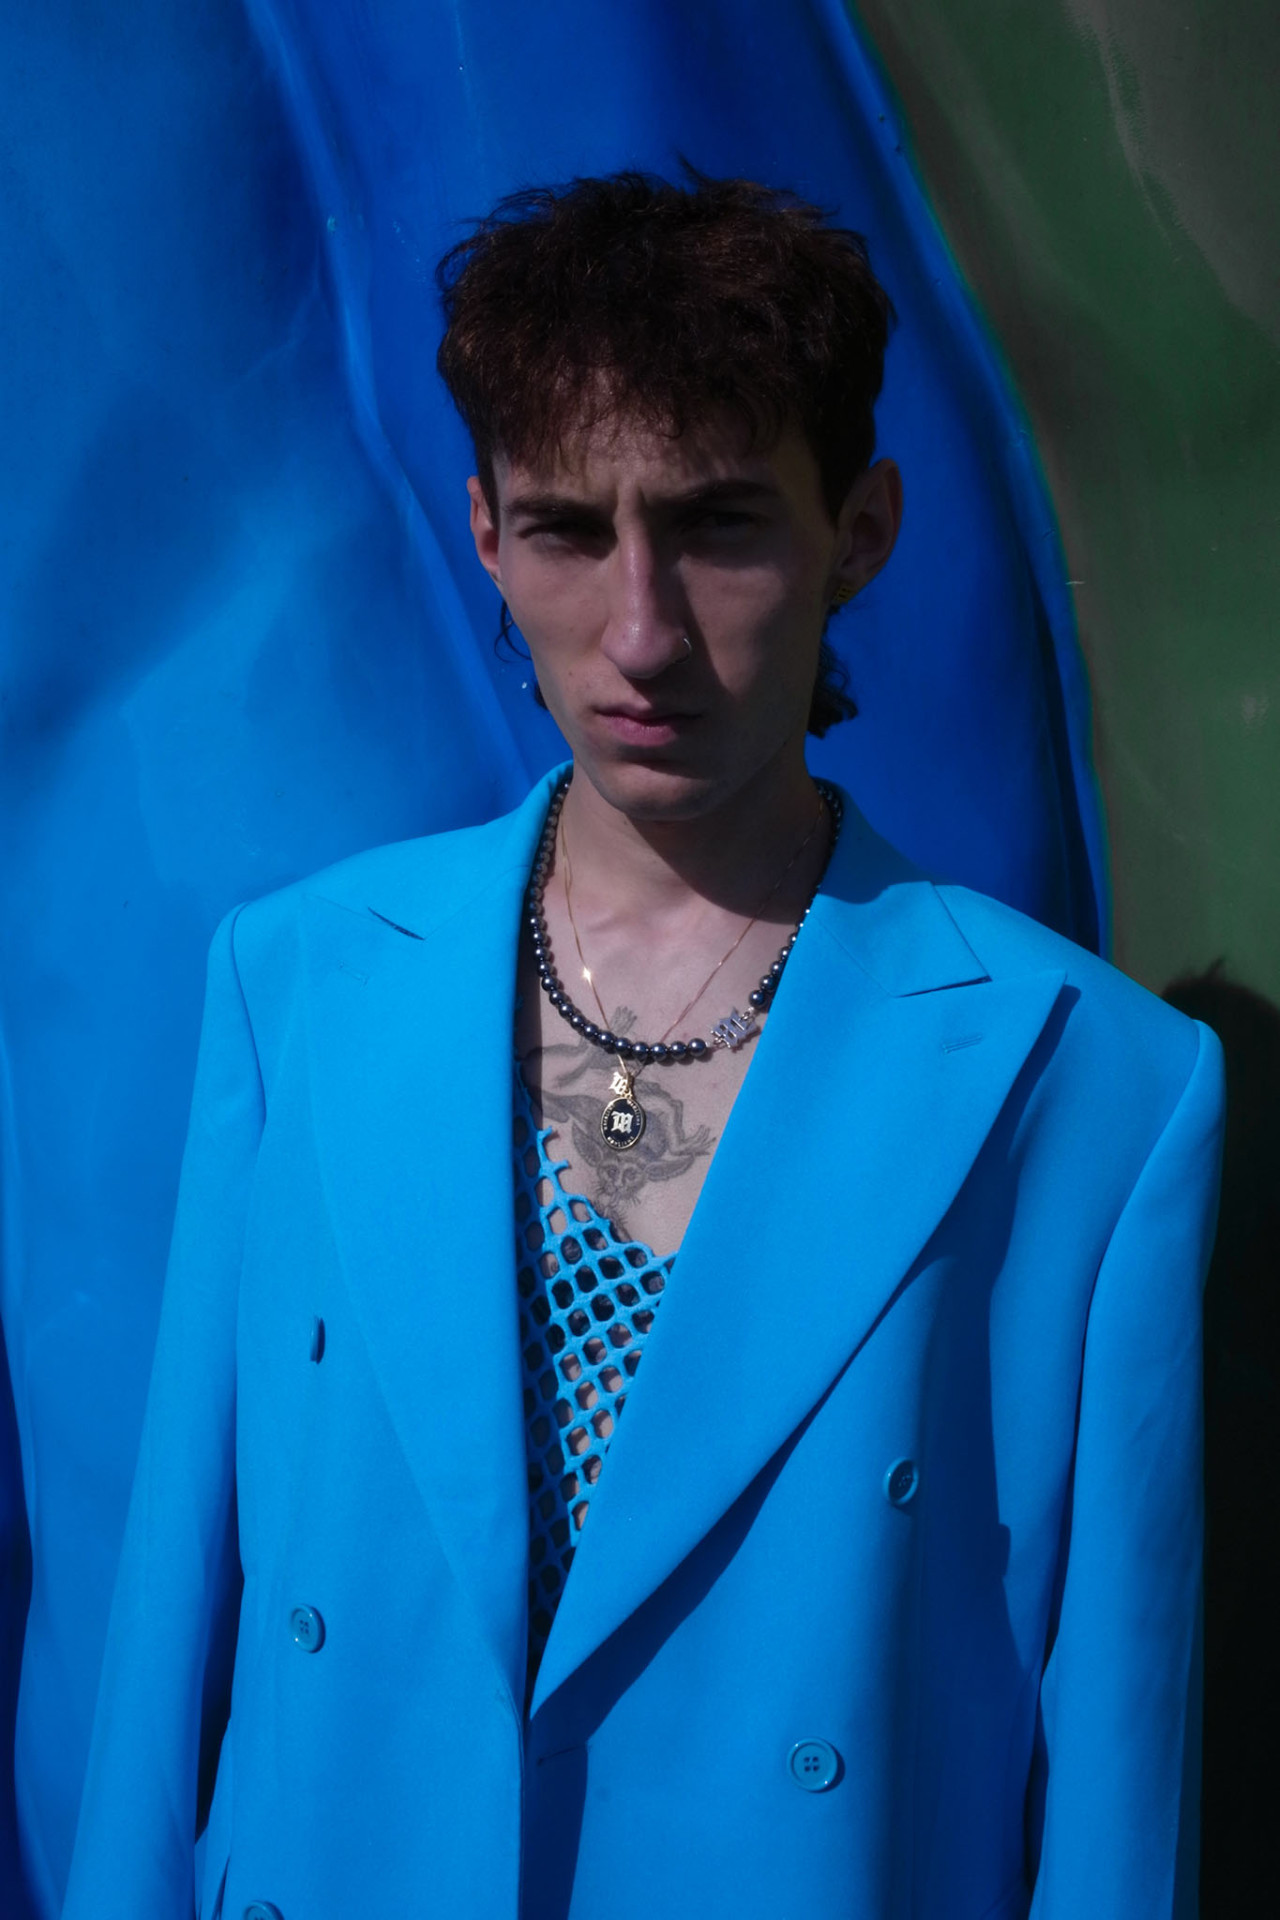 Misbhv Men's 80s Double Breasted Blazer in Turquoise Mesh Top in Turquoise SS20